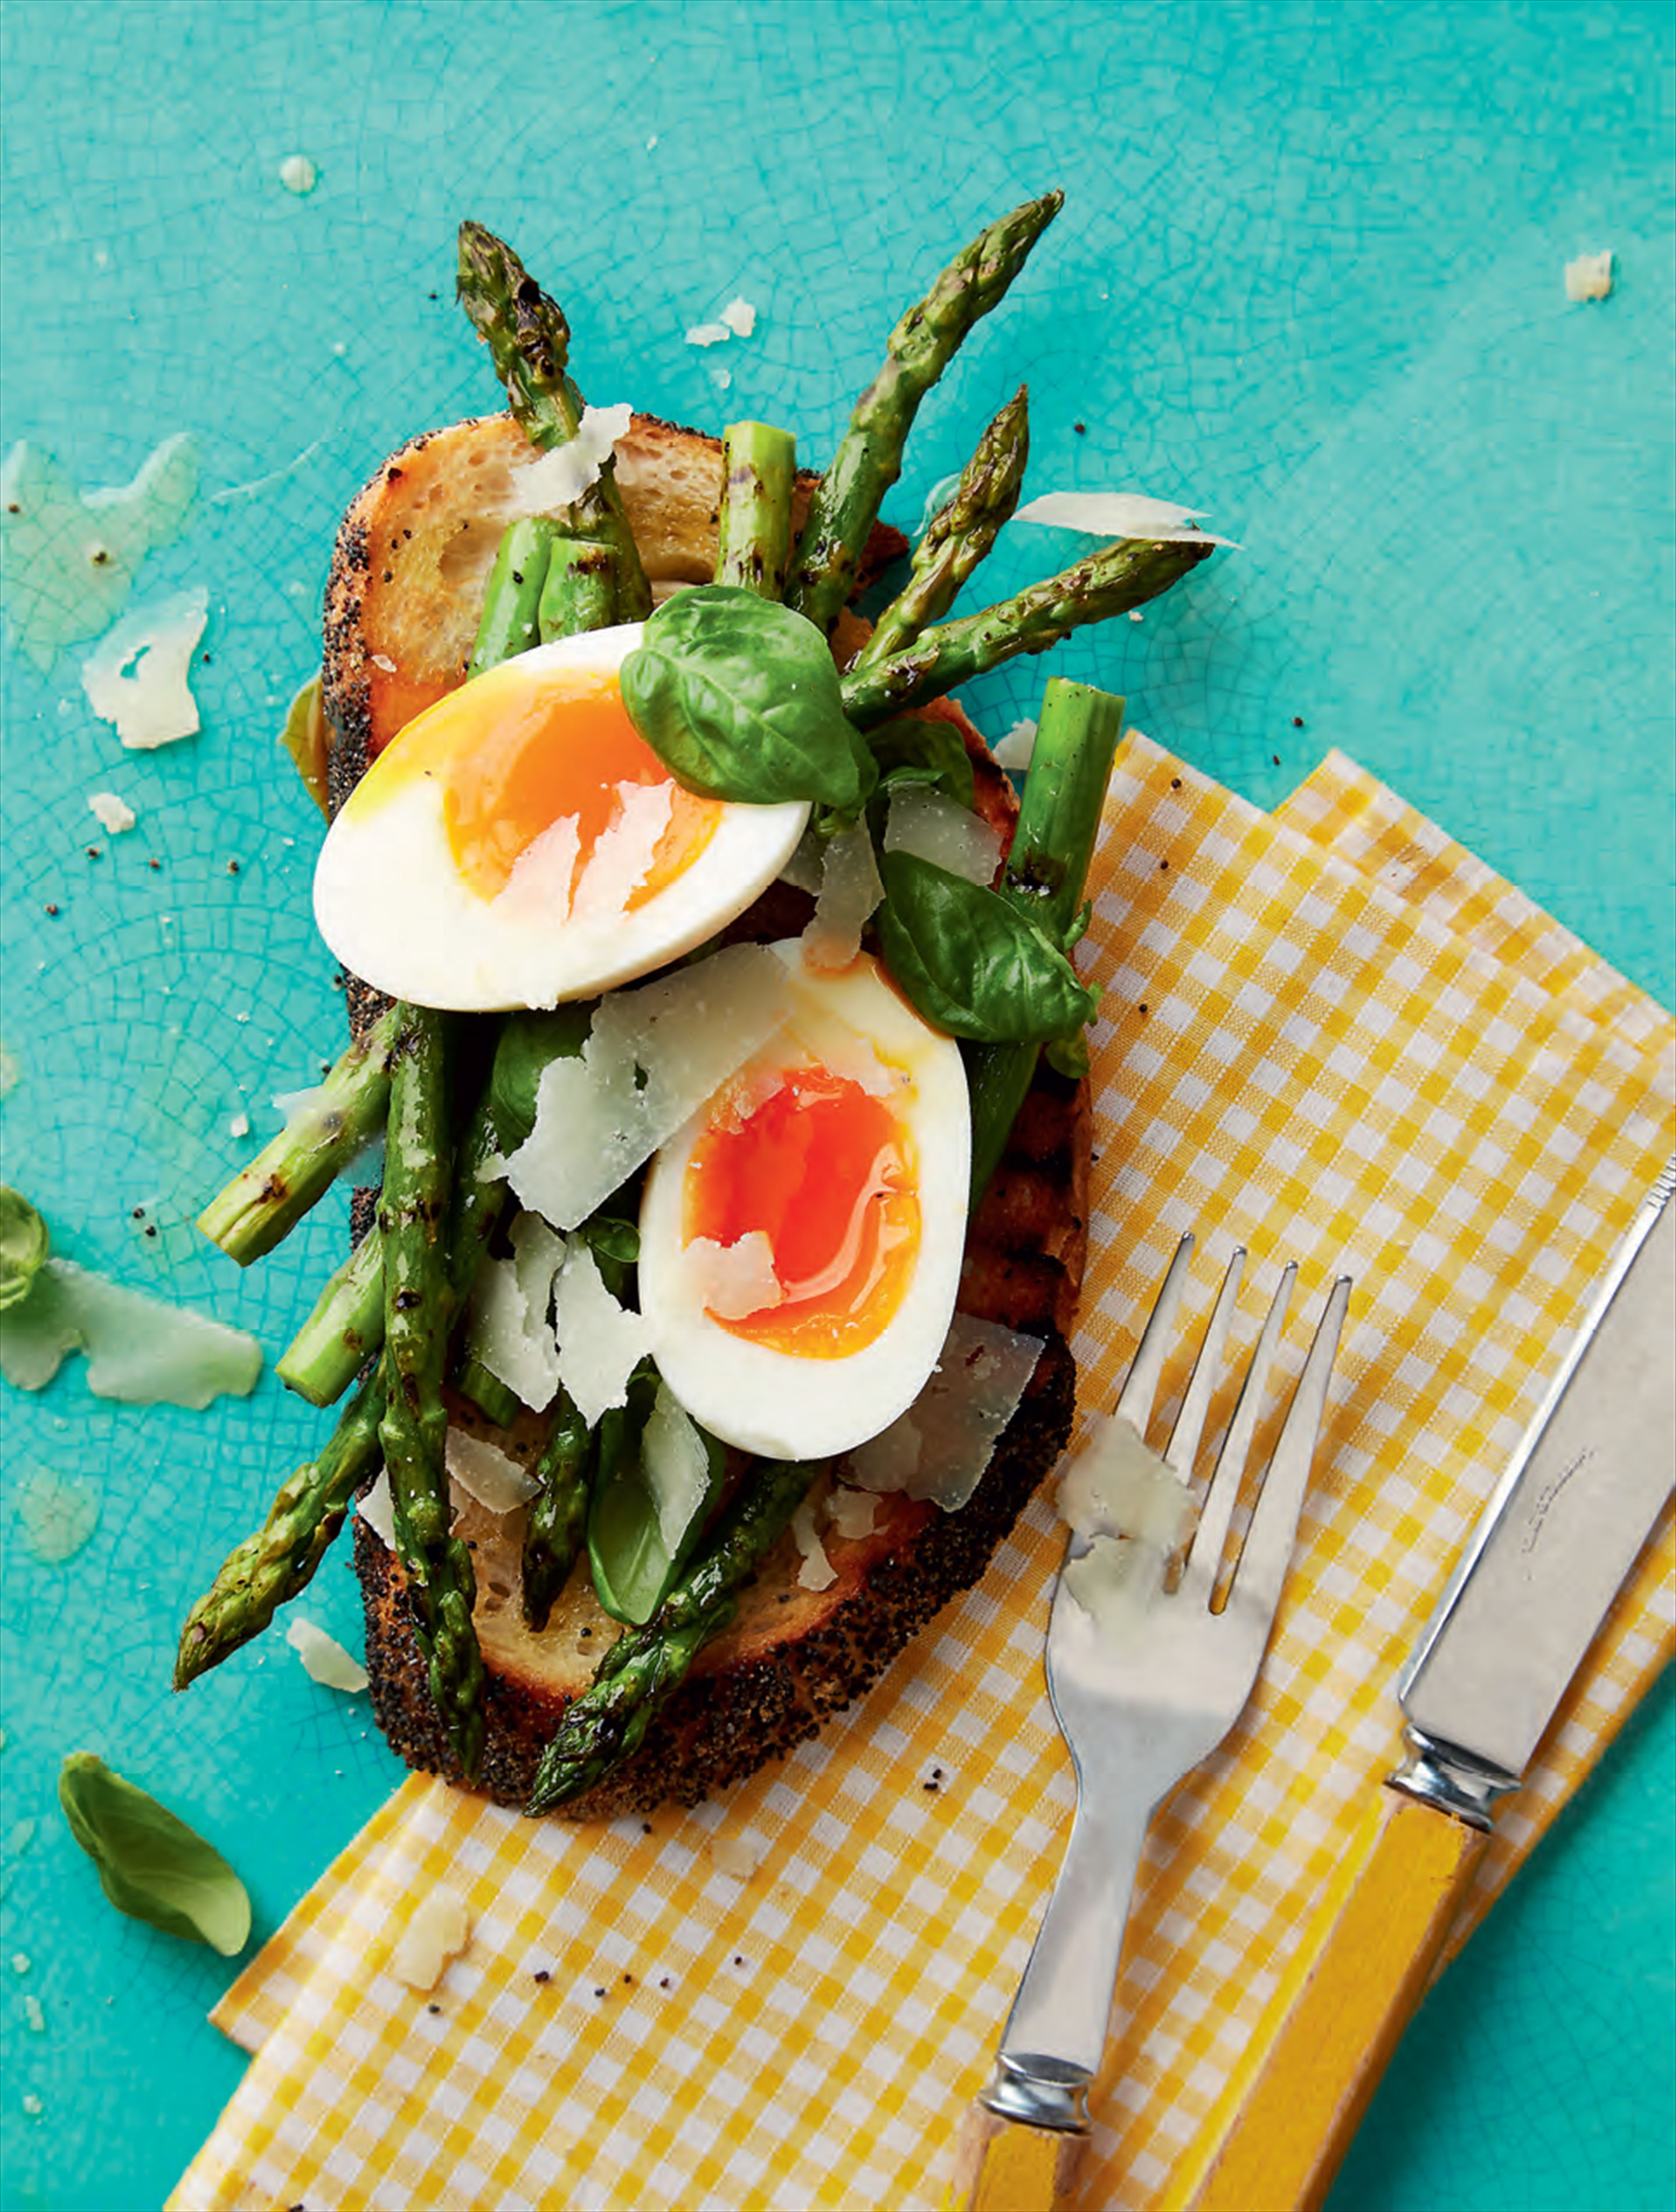 Soft-boiled egg asparagus & pecorino